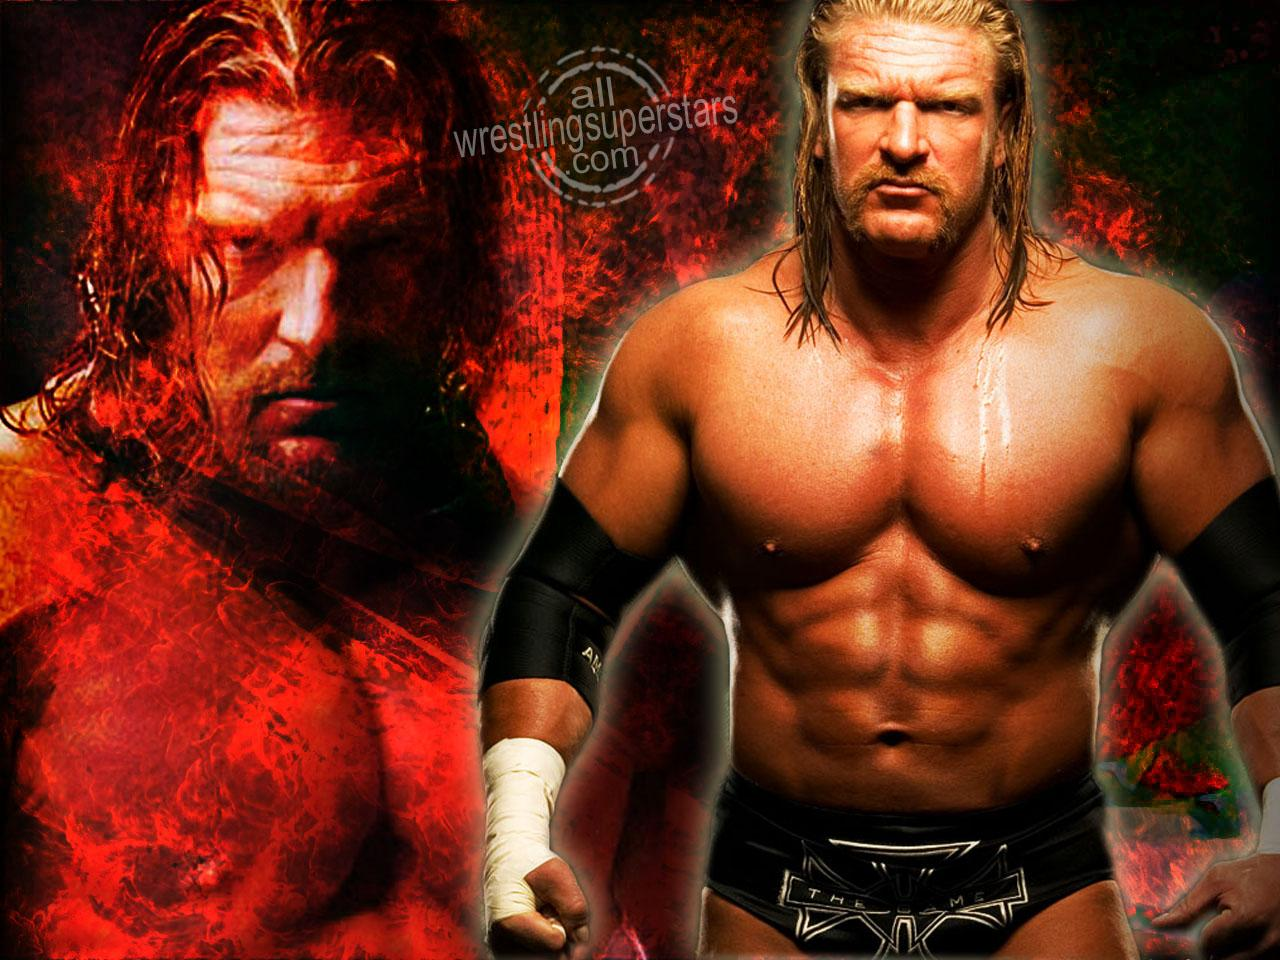 Wwe Superstar Wallpaper Wallpaper Pictures HD Wallpapers Download Free Images Wallpaper [1000image.com]